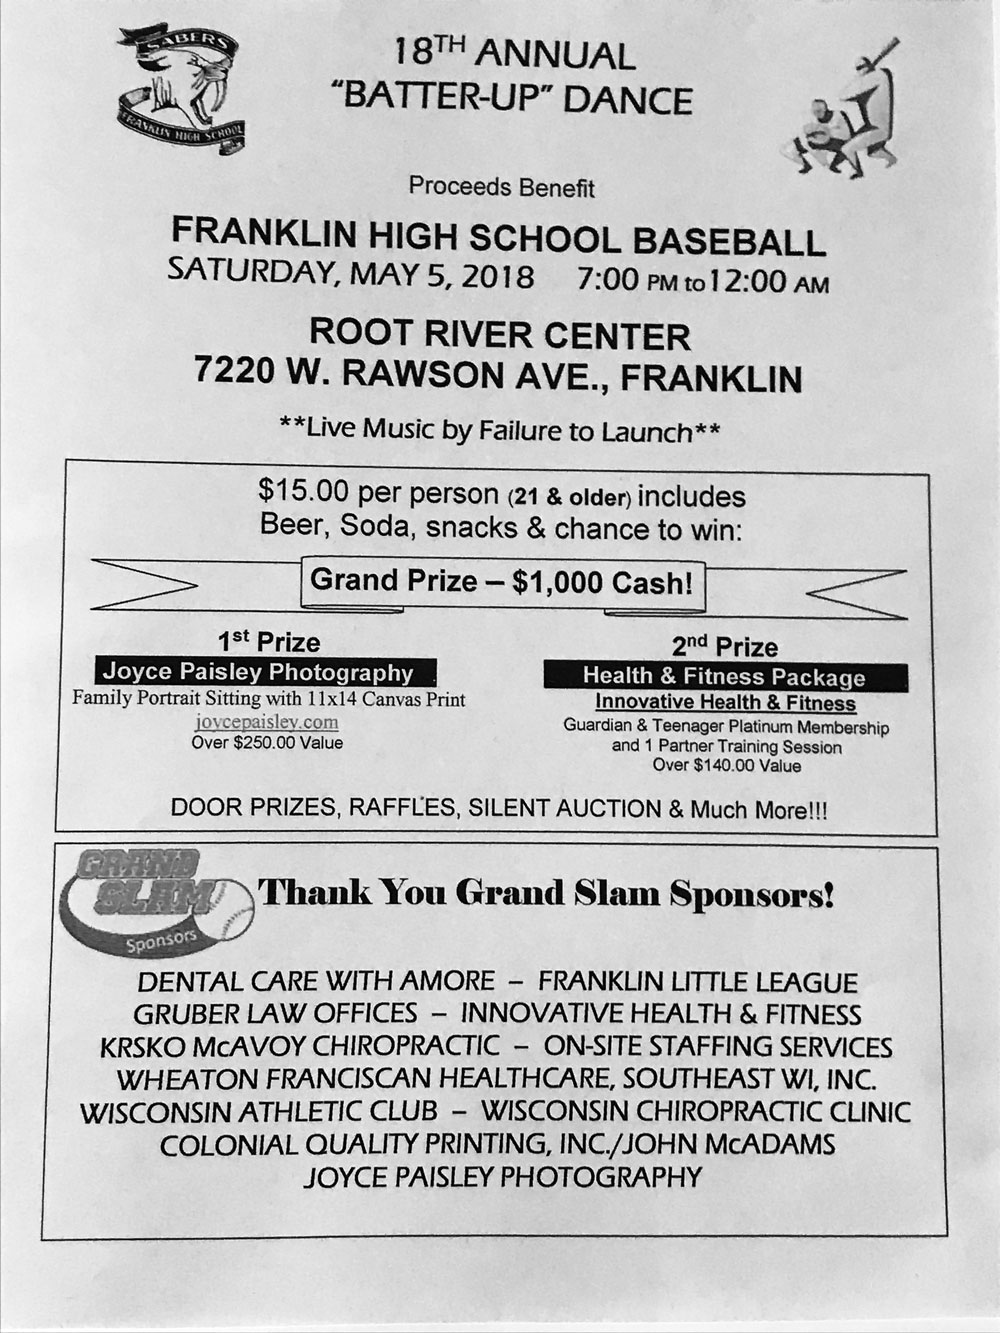 Franklin High School Batter-Up Dance Fundraiser